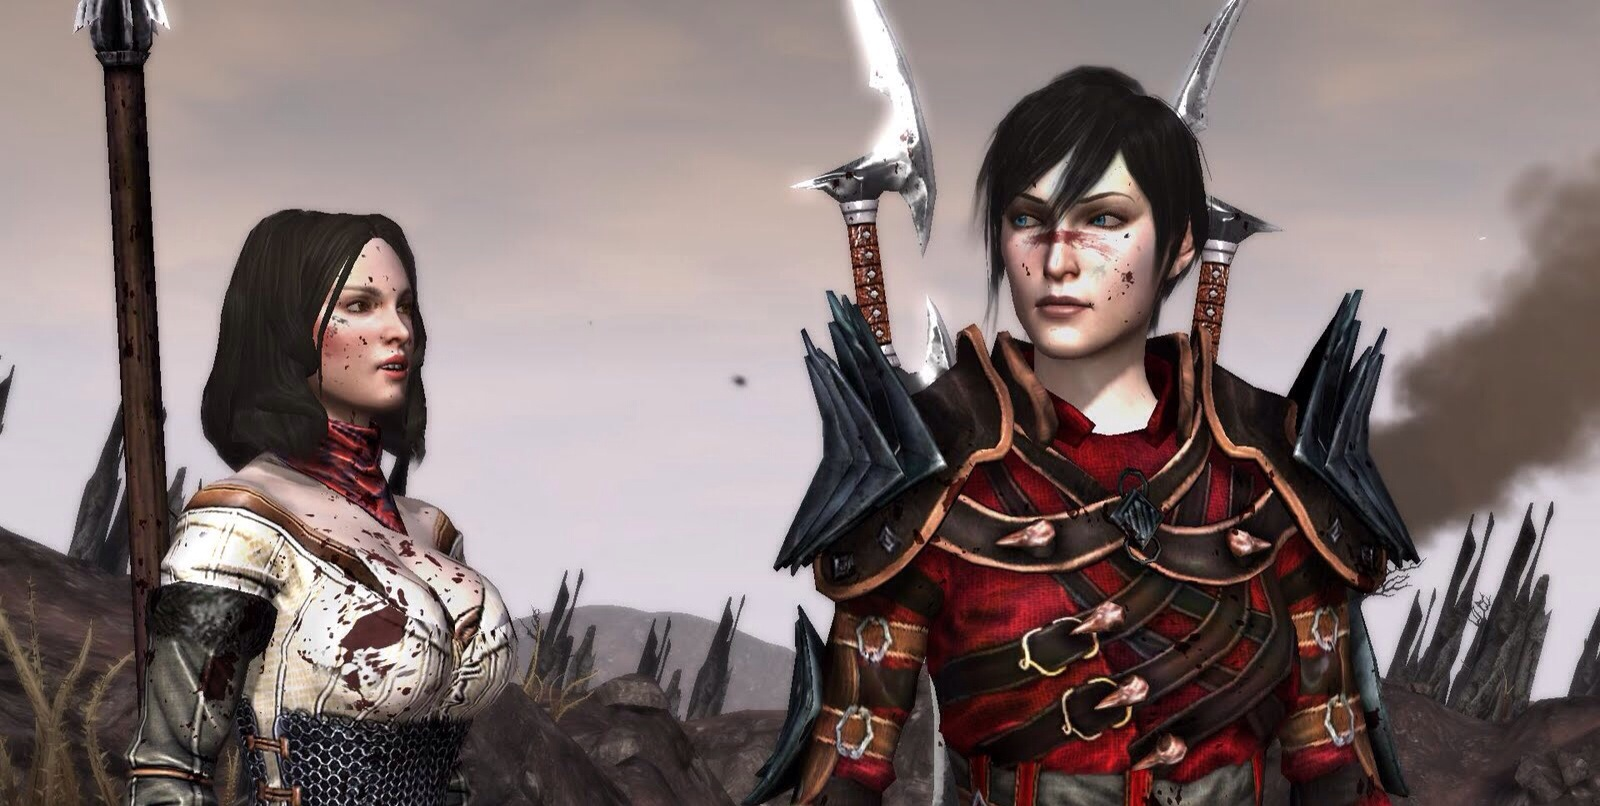 Hawke (right) - the main protagonist in the story who hates being the mary sue as much as you do.